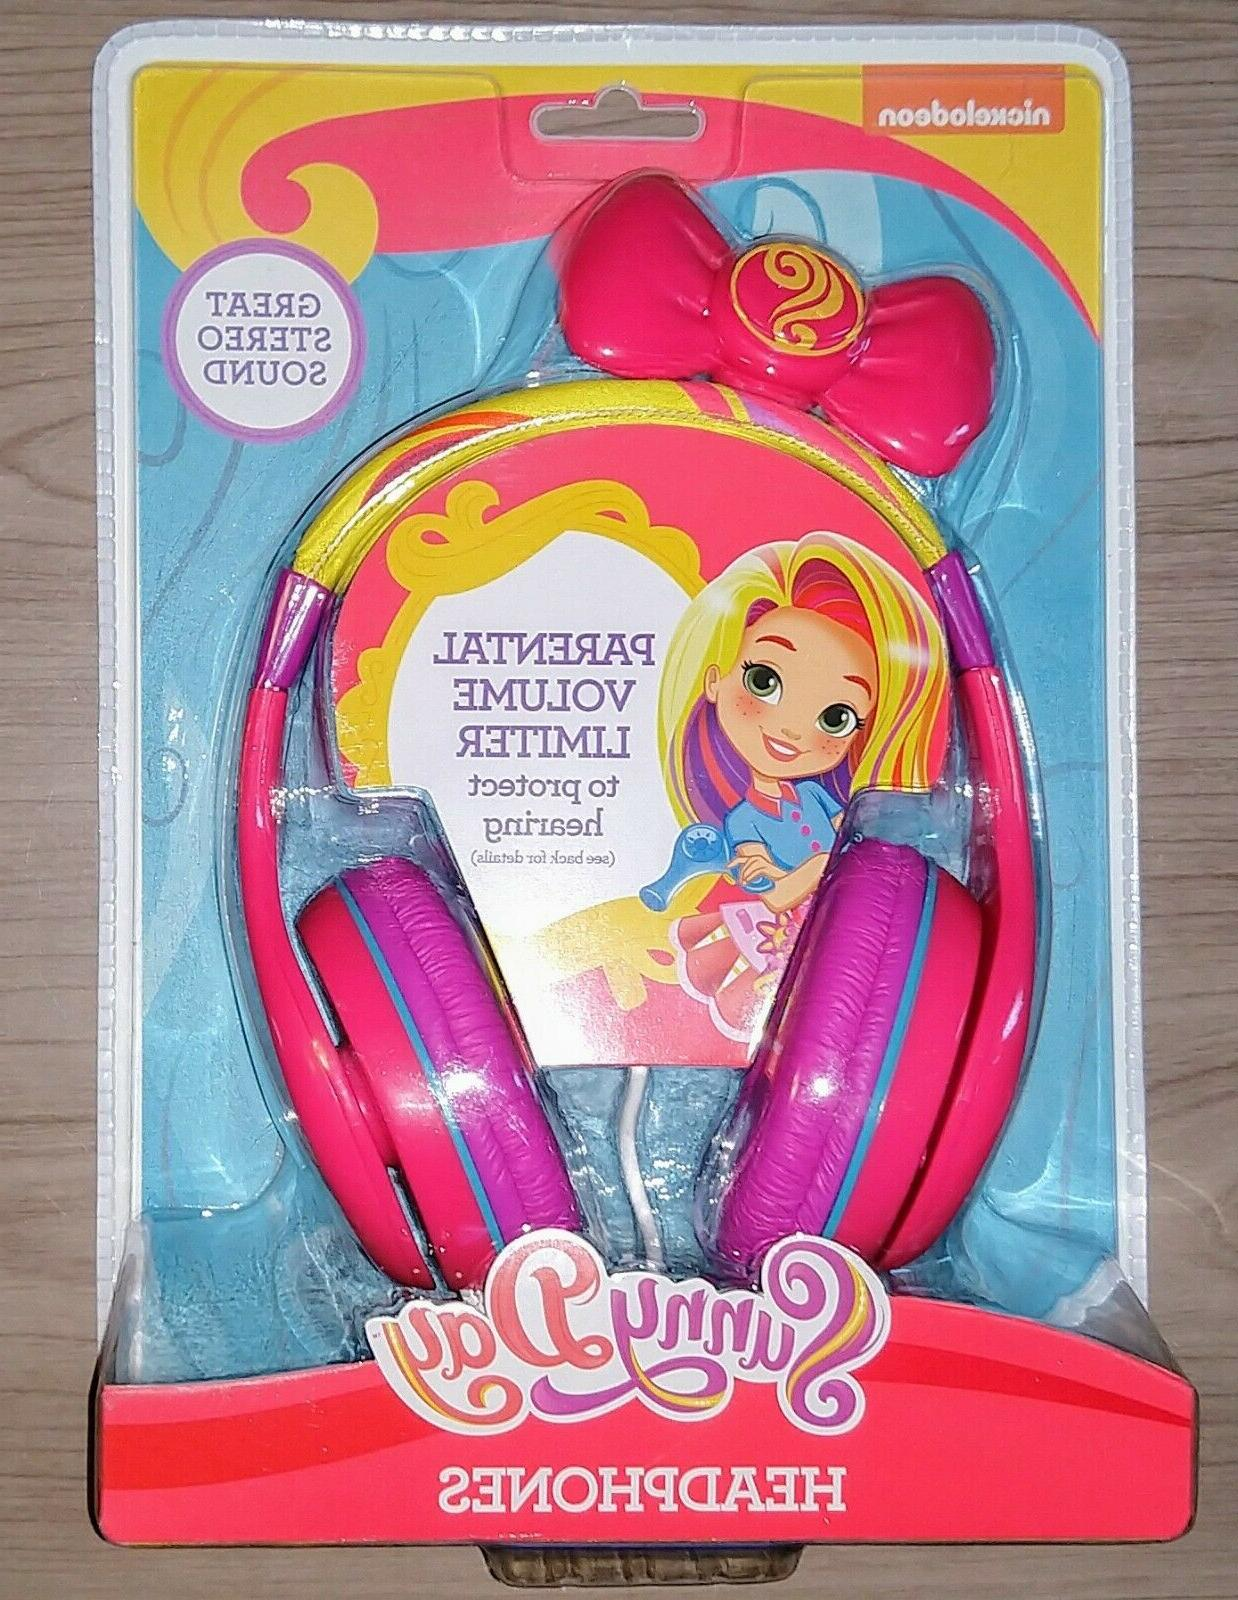 Nickelodeon. Sunny Day Headphones with Built in Volume Limit